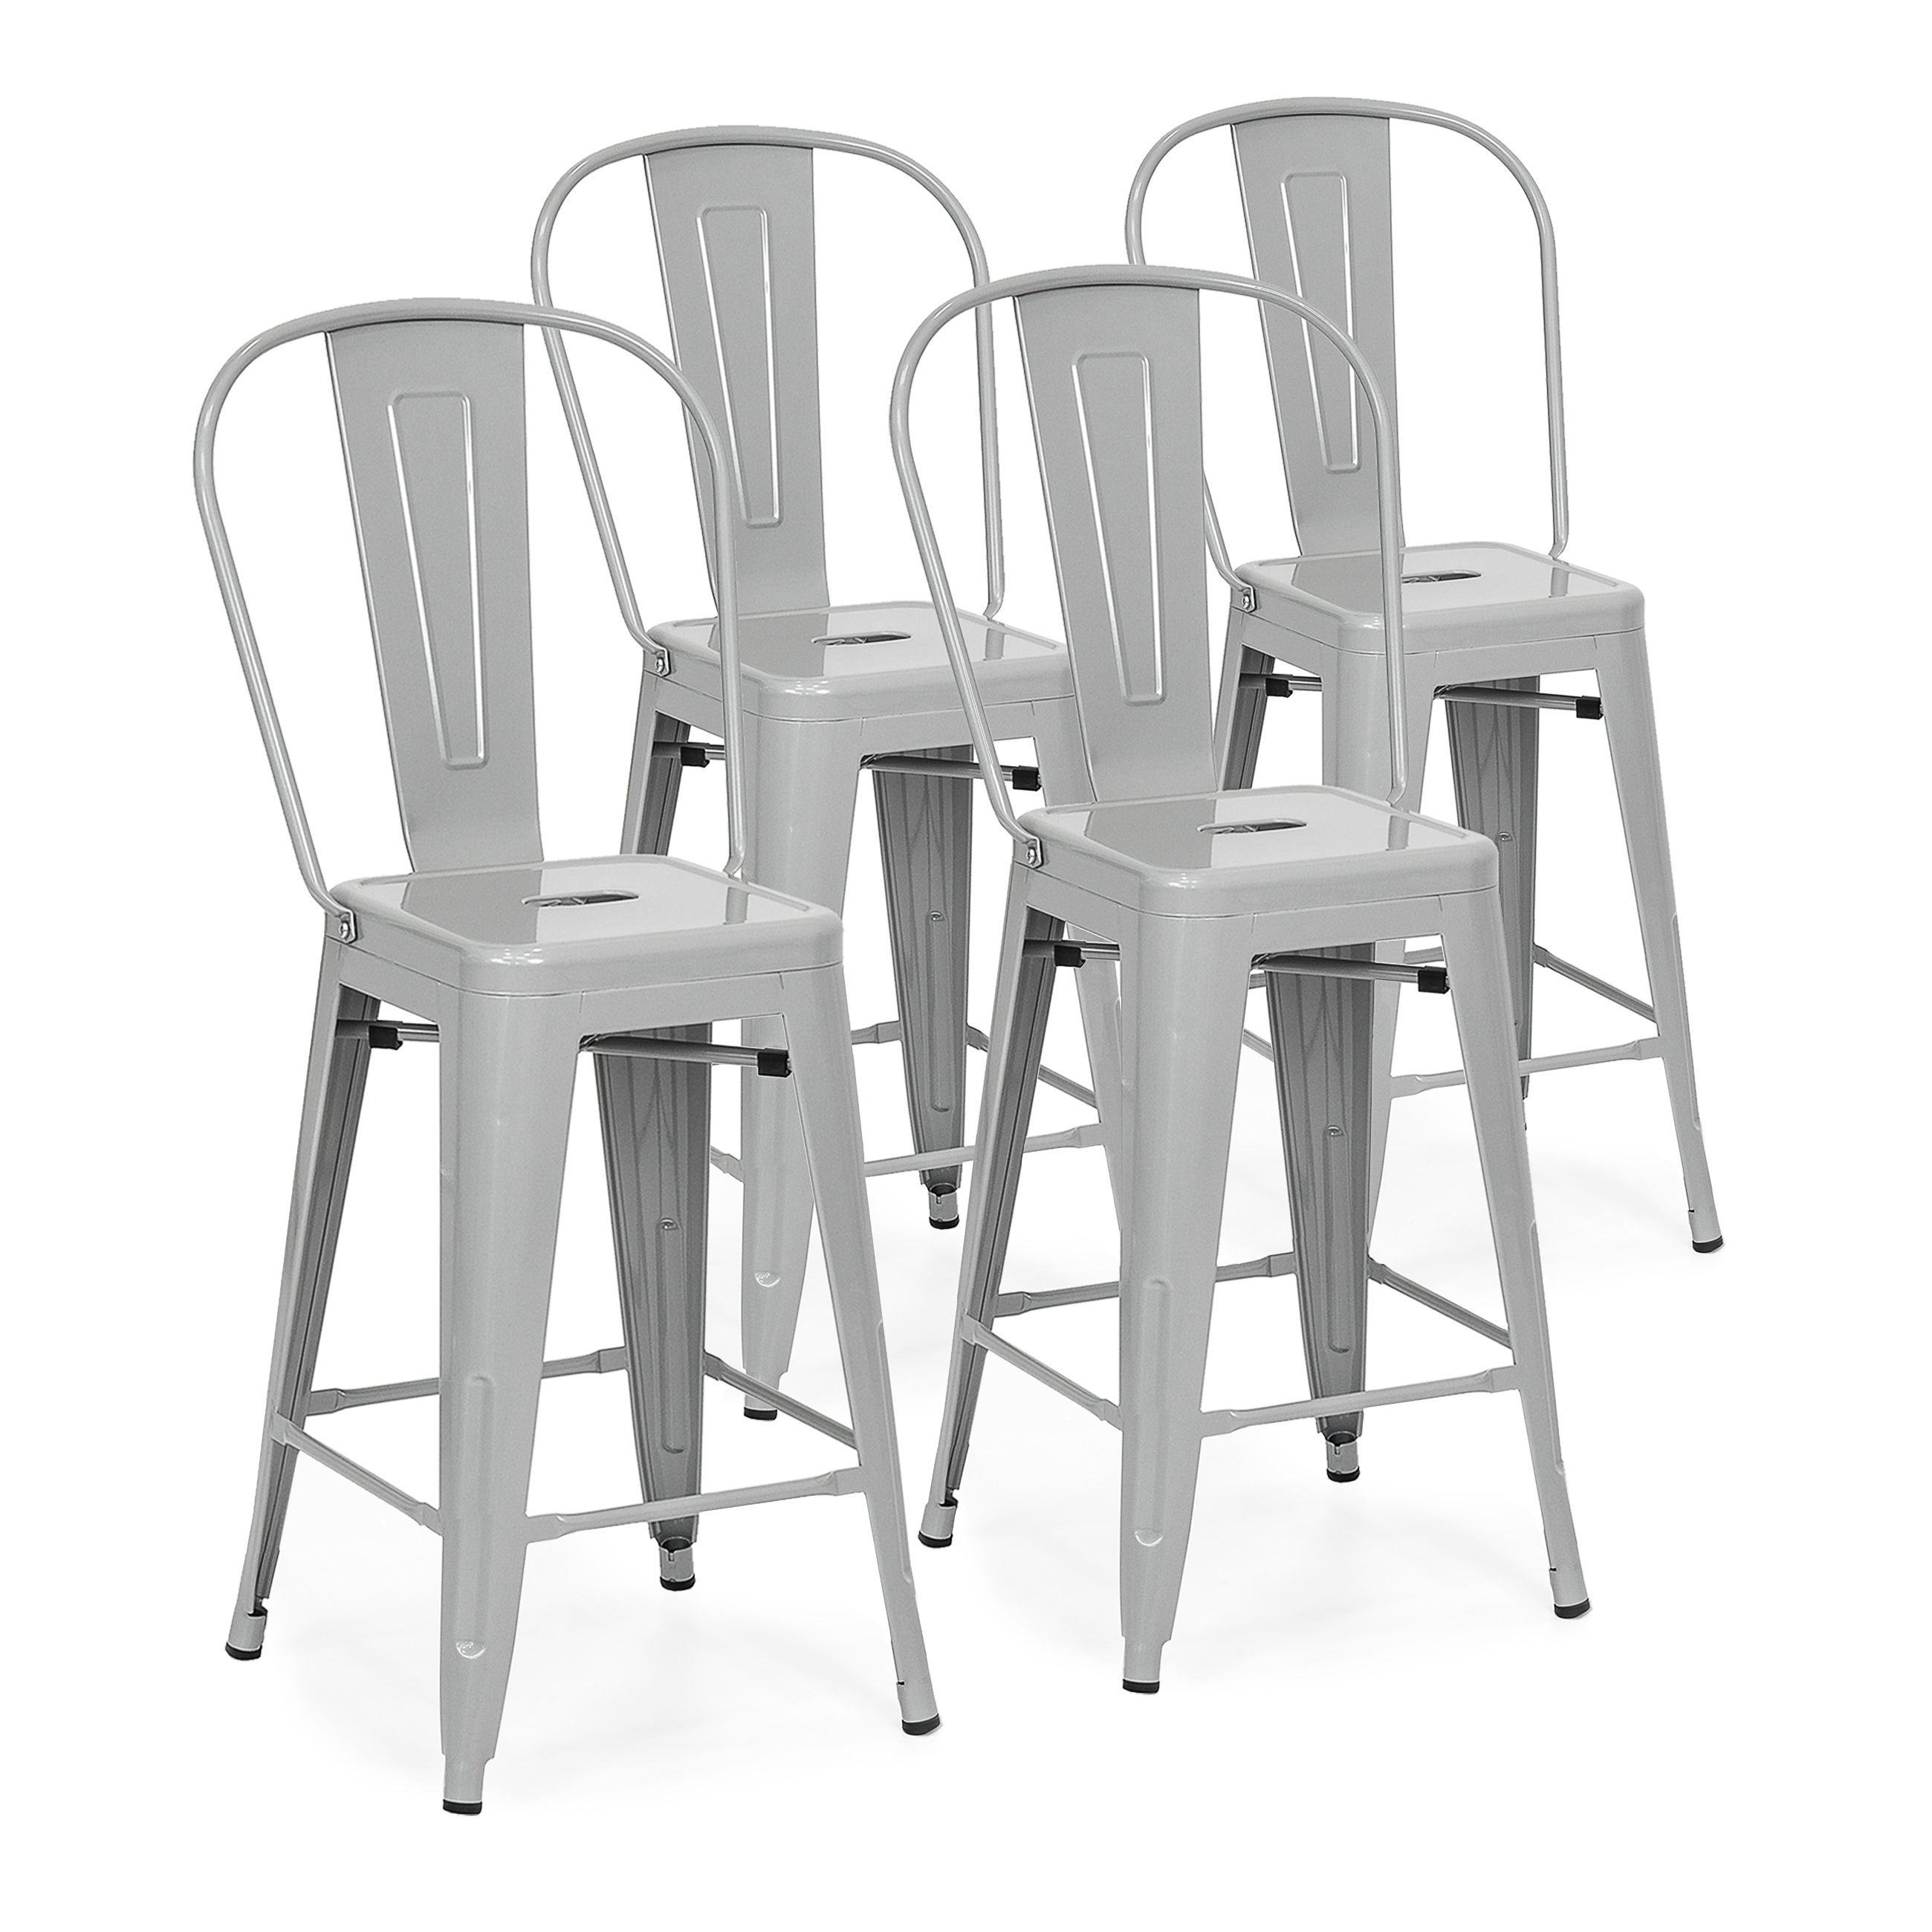 Best Choice Products 24in Set of 4 High Backrest Industrial Metal Counter Height Stools - Silver